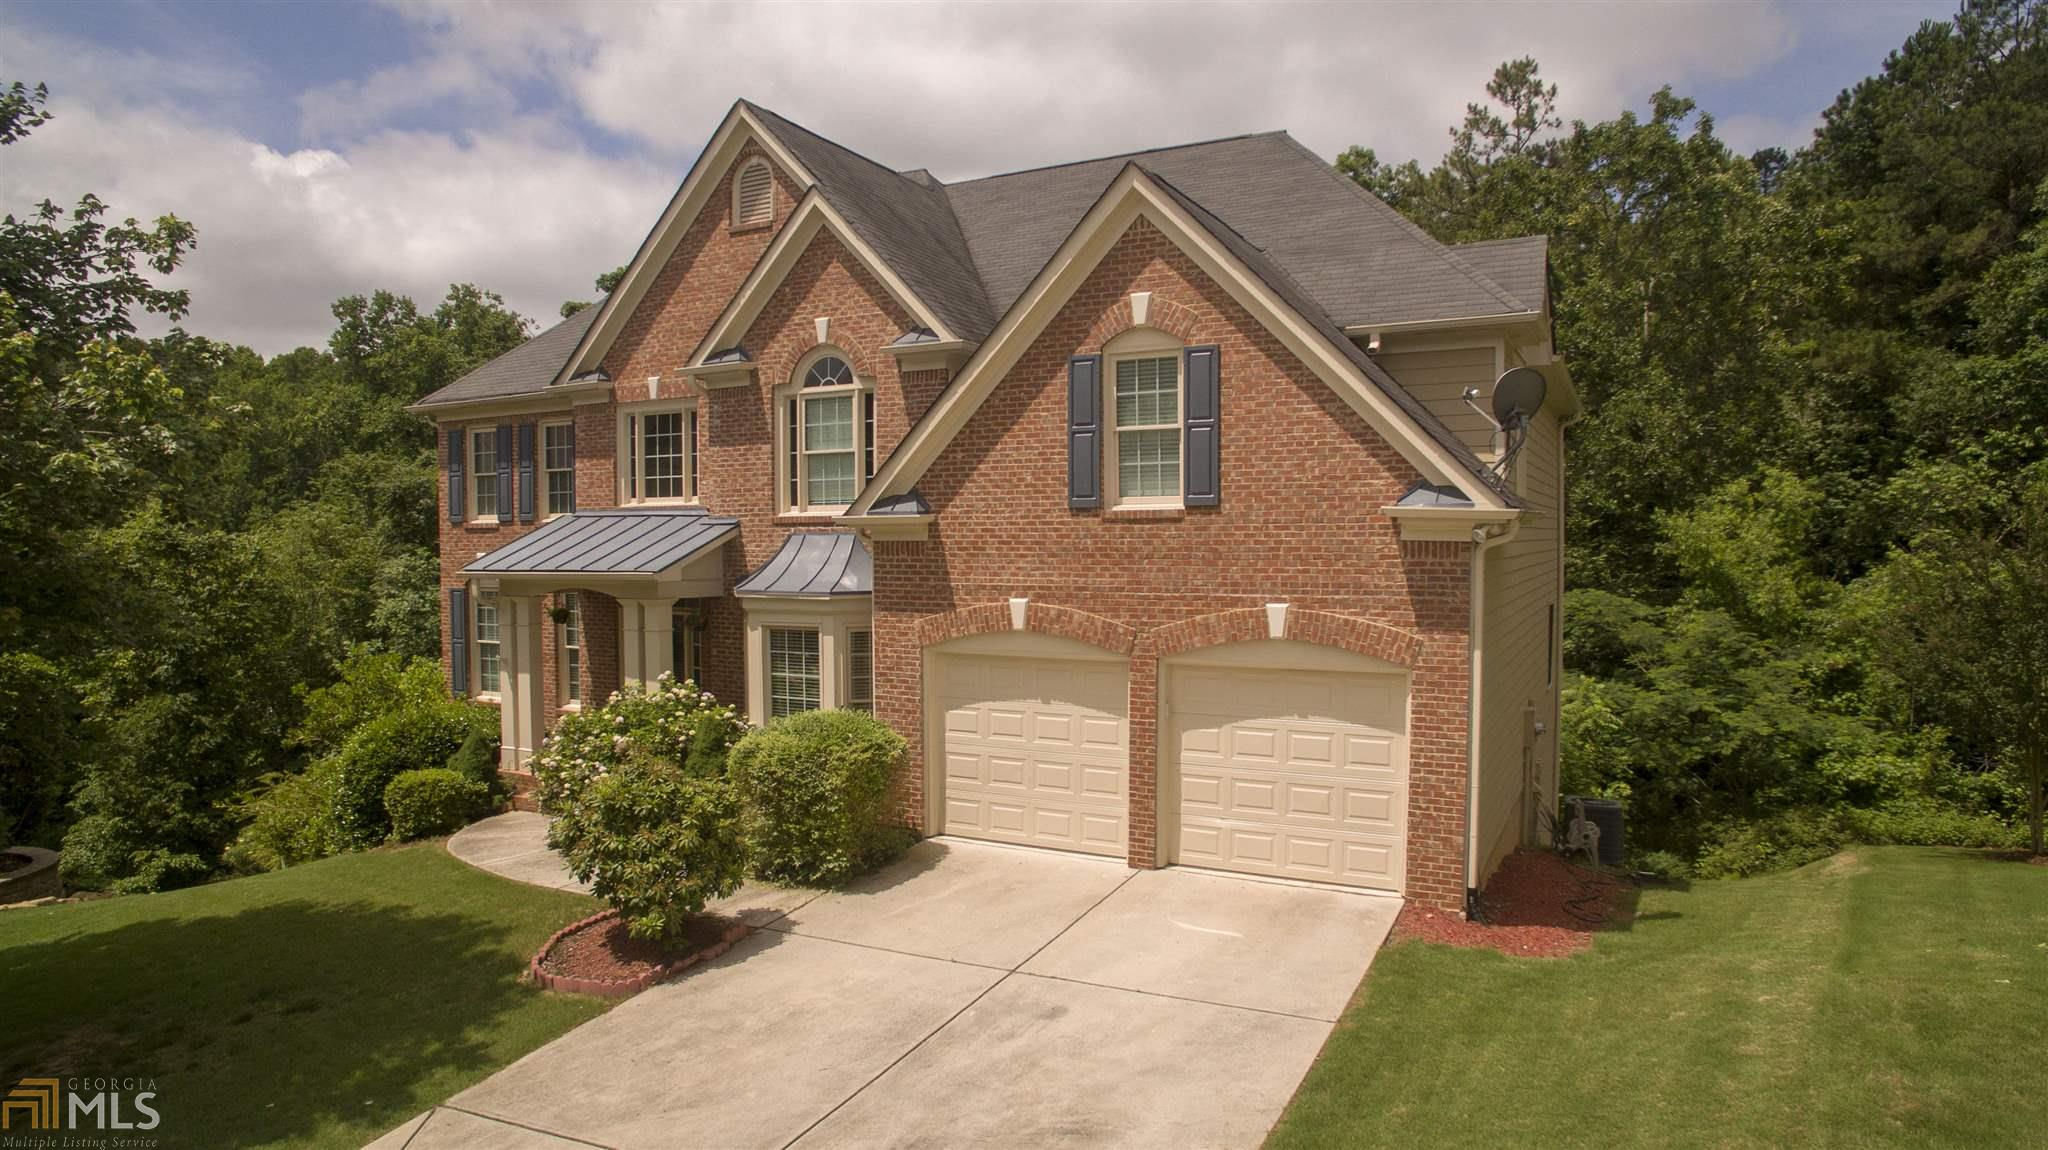 892 Preserve Bluff Dr, Buford, GA, 30518 | Better Homes and Gardens ...